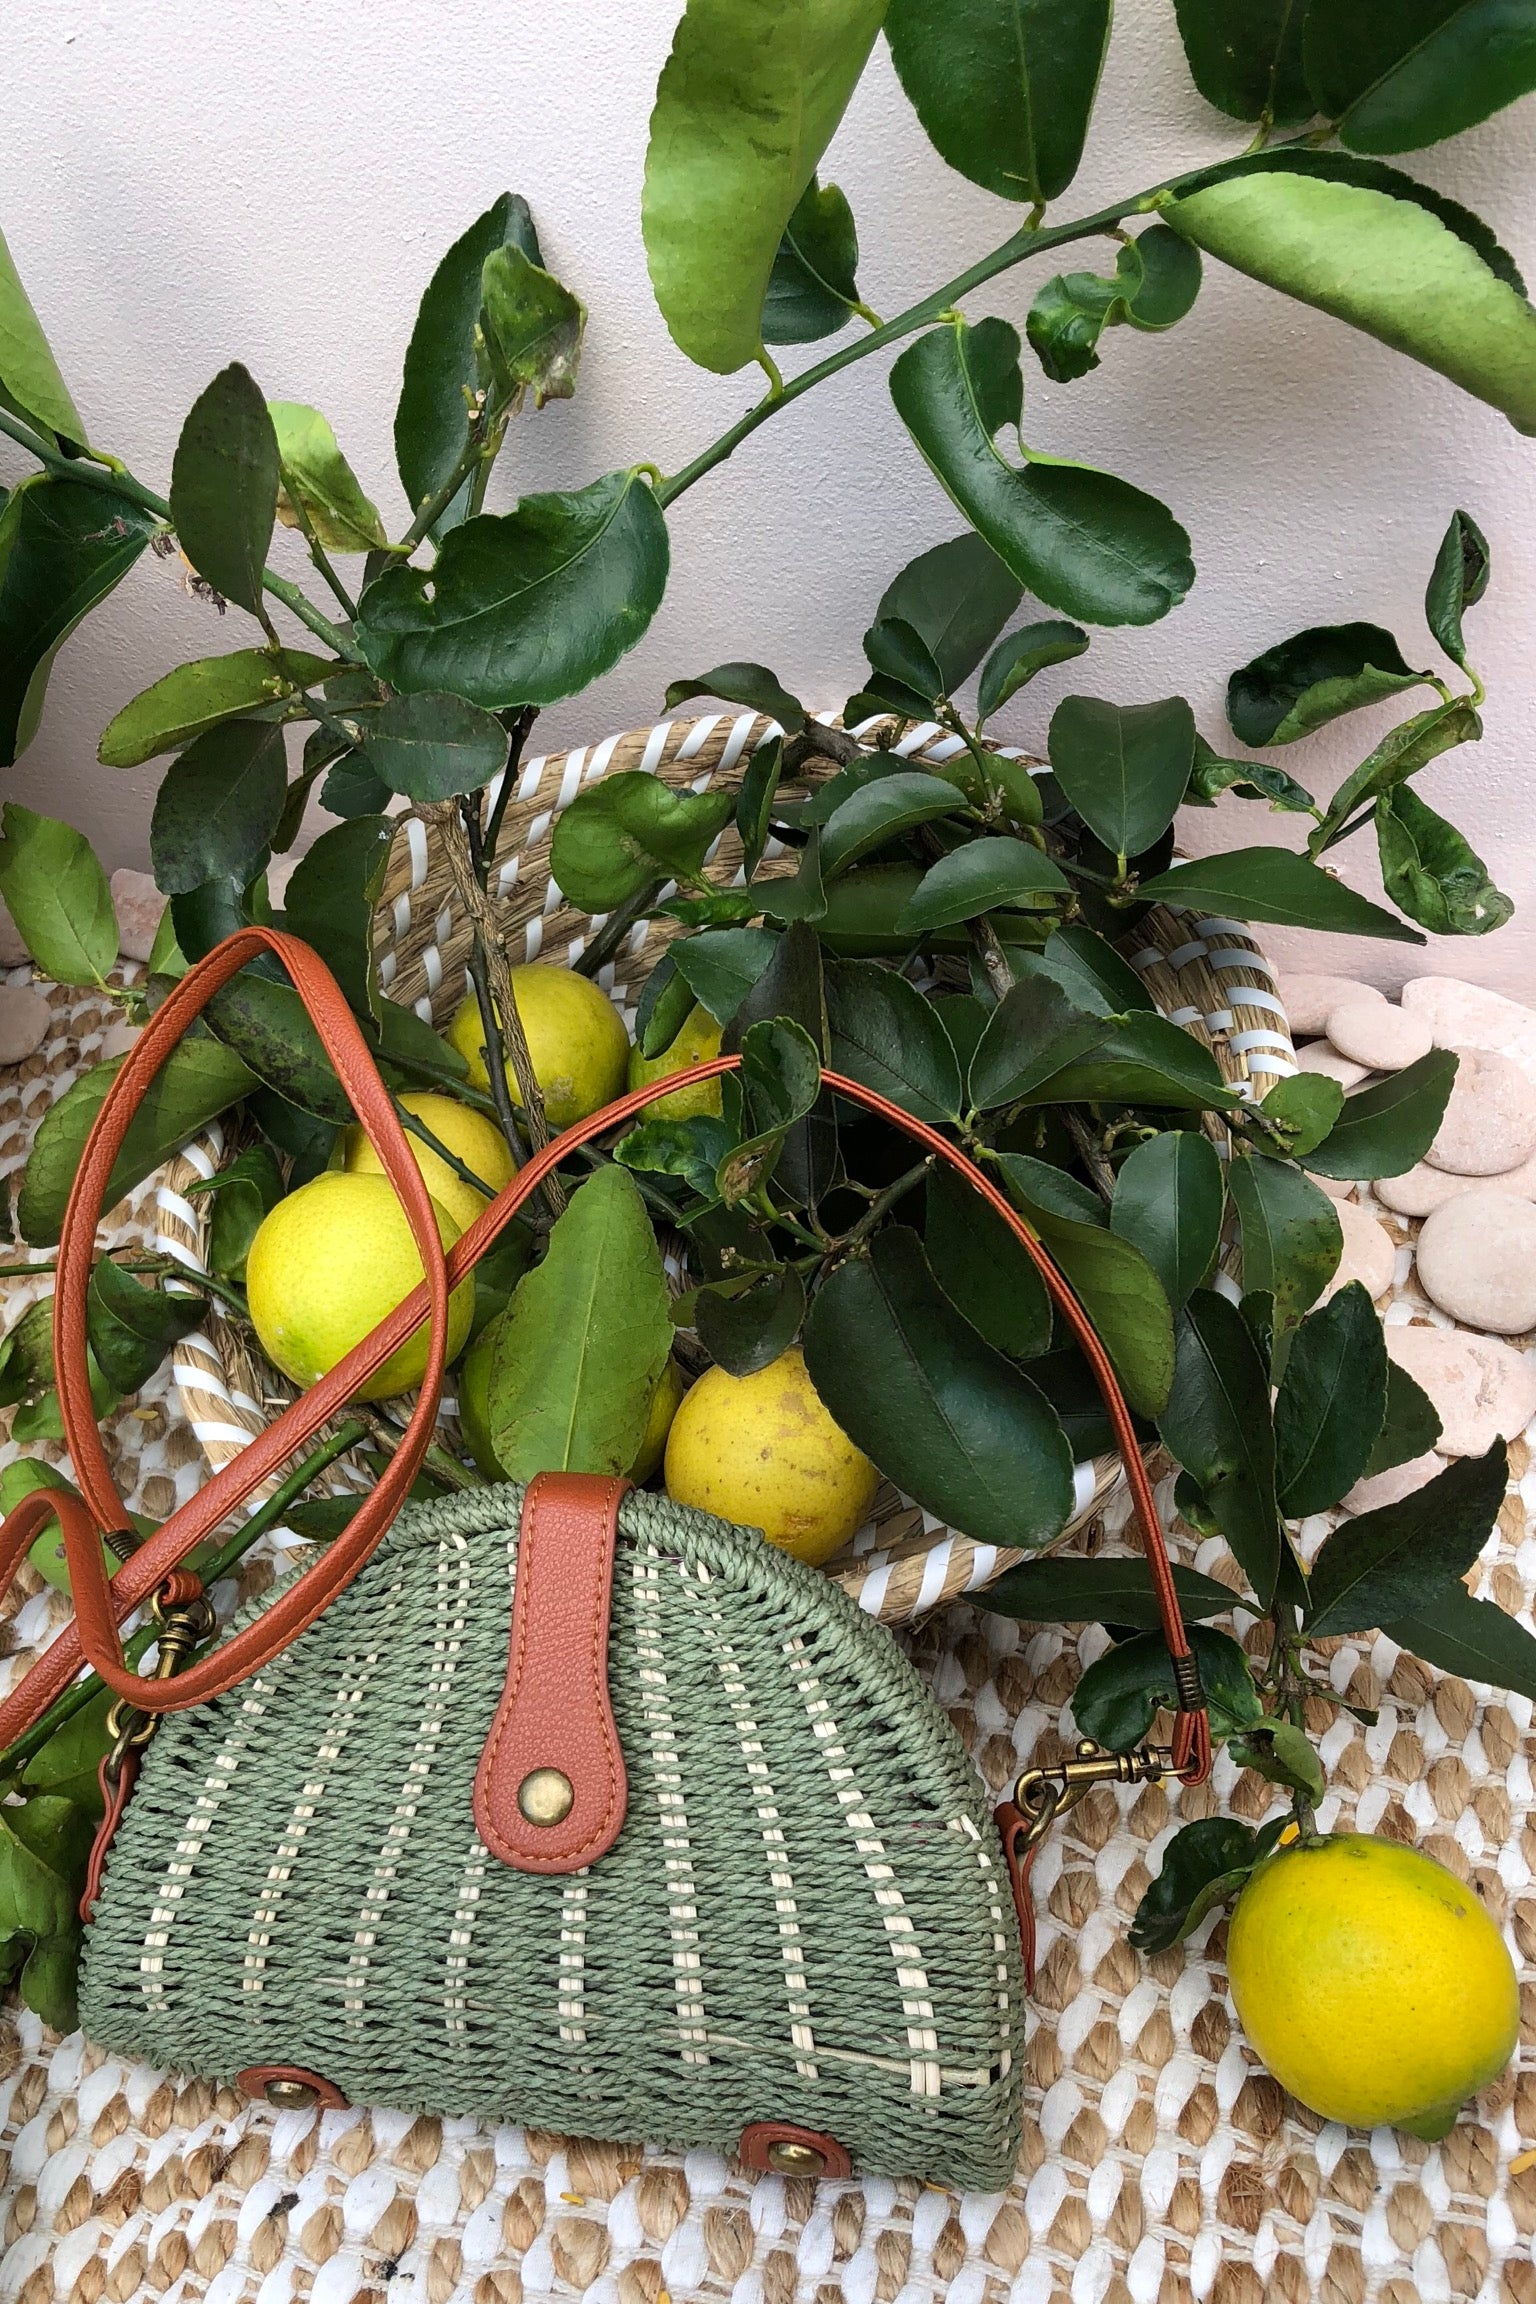 Bag Ava Suzie Woven straw bag in sage green is a retro inspired vintage look bohemian straw bag with long handle